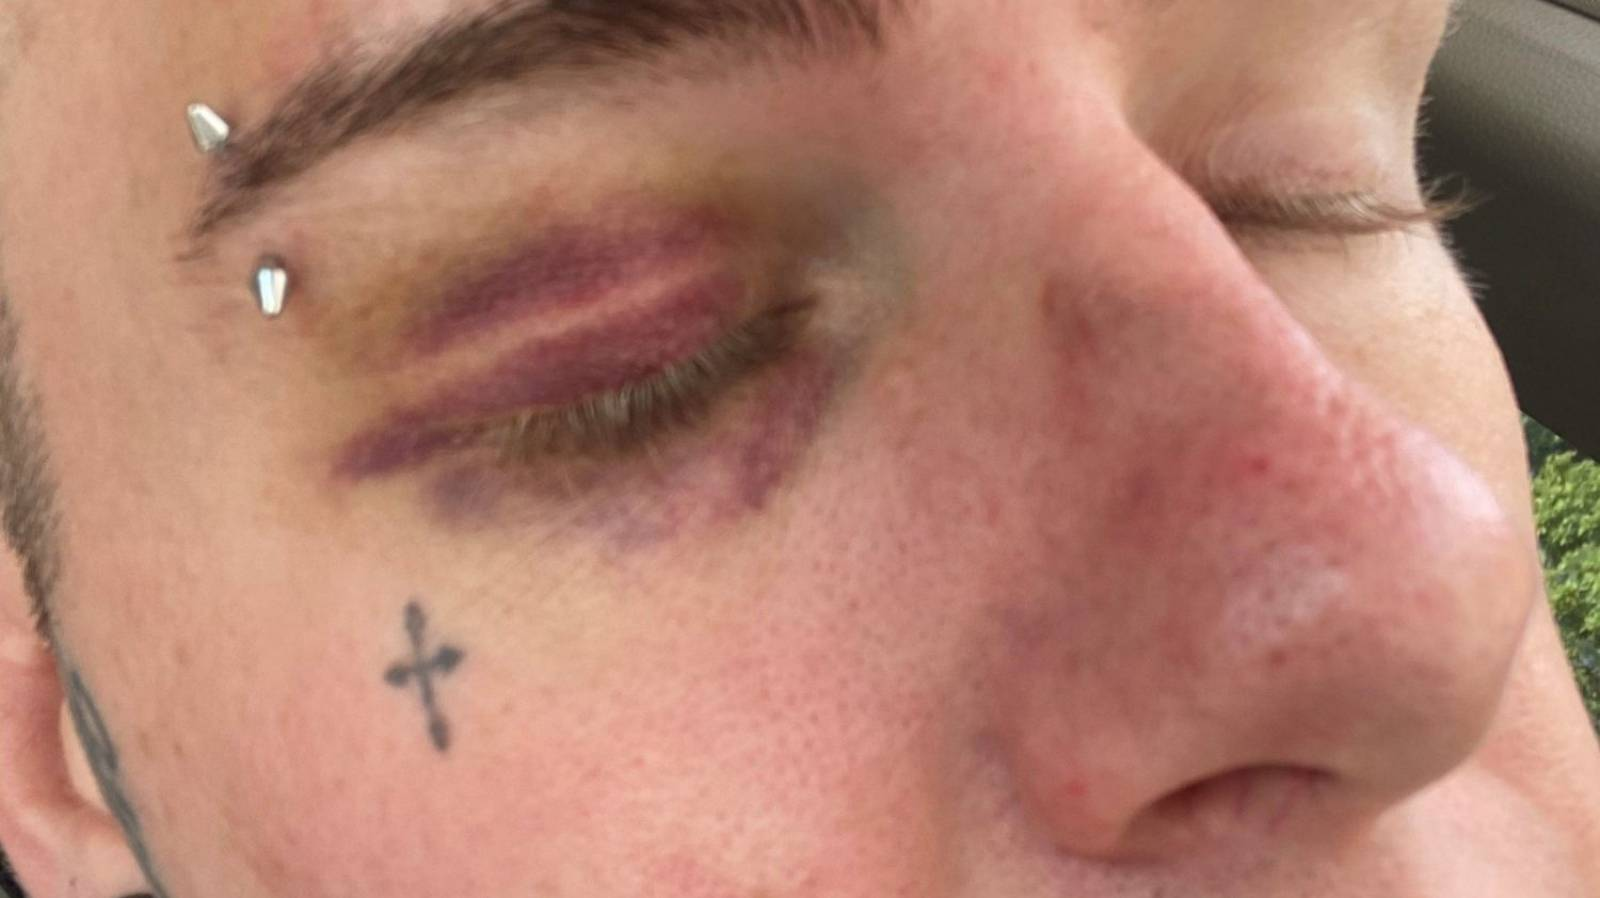 Gay man punched, stomped on by men yelling homophobic slurs